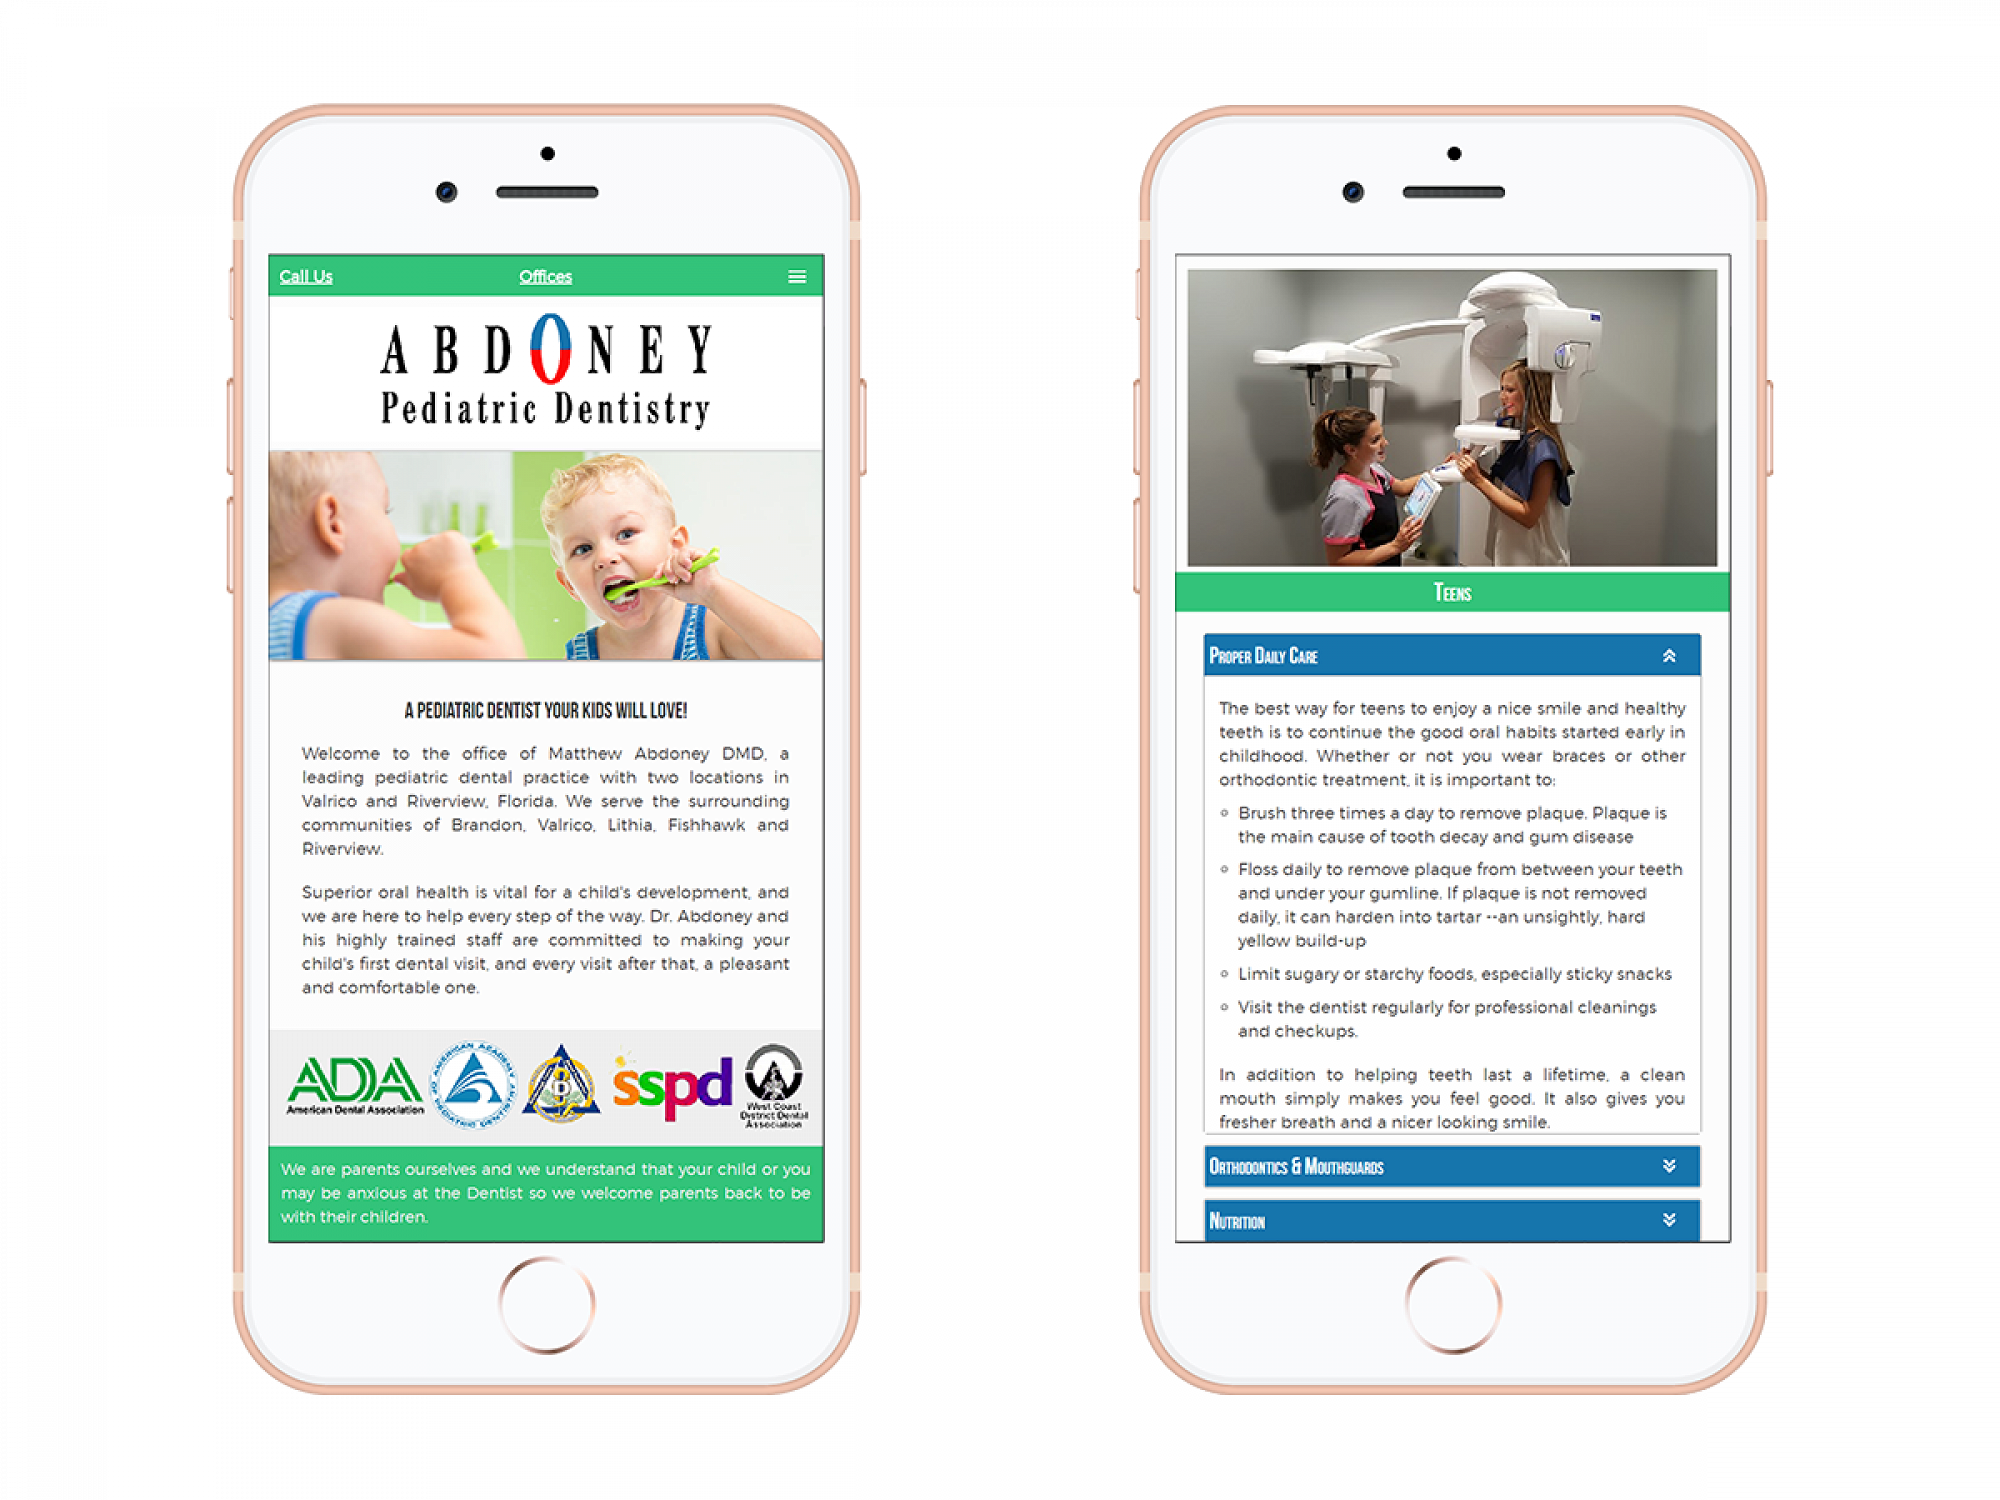 Abdoney Pediatric Dentistry Mobile Website Design